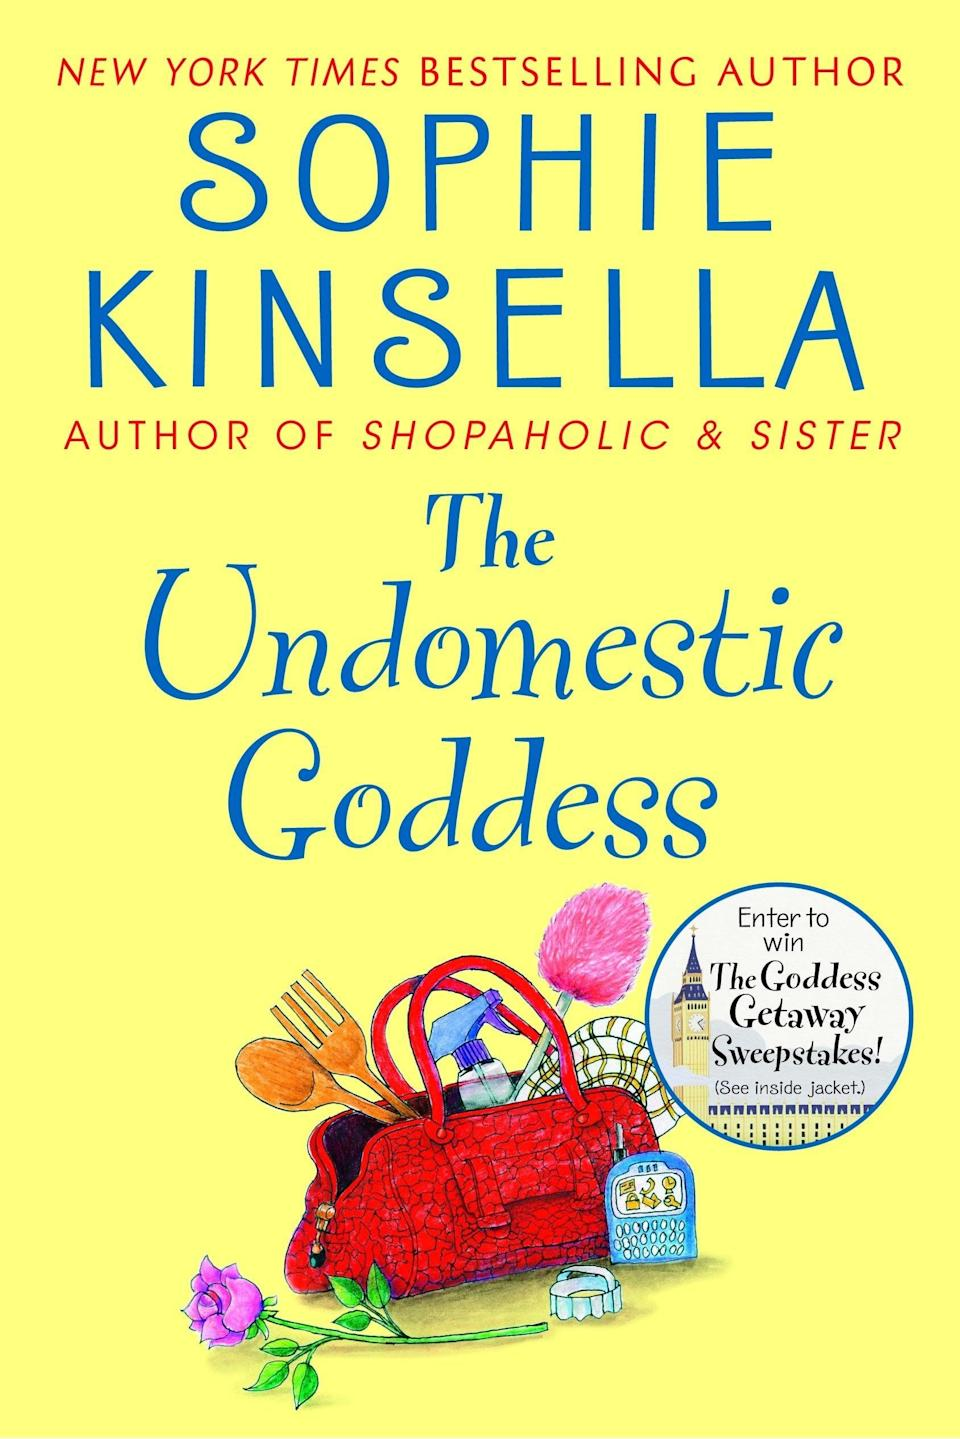 <p>Sophie Kinsella can do no wrong when it comes to writing romance with hilariously outlandish scenarios. If you love <strong>Confessions of a Shopaholic</strong> (the book series or the 2009 movie based on the first book), she has plenty of standalone rom-com books that would all make highly entertaining movies. <span><strong>The Undomestic Goddess</strong></span> ($8) is an oldie but goodie, and it stands out to me specifically because it's set in the English countryside, where Samantha accidentally finds herself after running away from London and the prestigious law firm where she works. At a beautiful country estate, she's mistaken for the new housekeeper and decides to go with it, never mind the fact that she has zero domestic skills.</p> <p>This book has it all: some truly slapstick moments, a sweet romance with the hot gardener, and even a tiny bit of corporate scandal.</p>